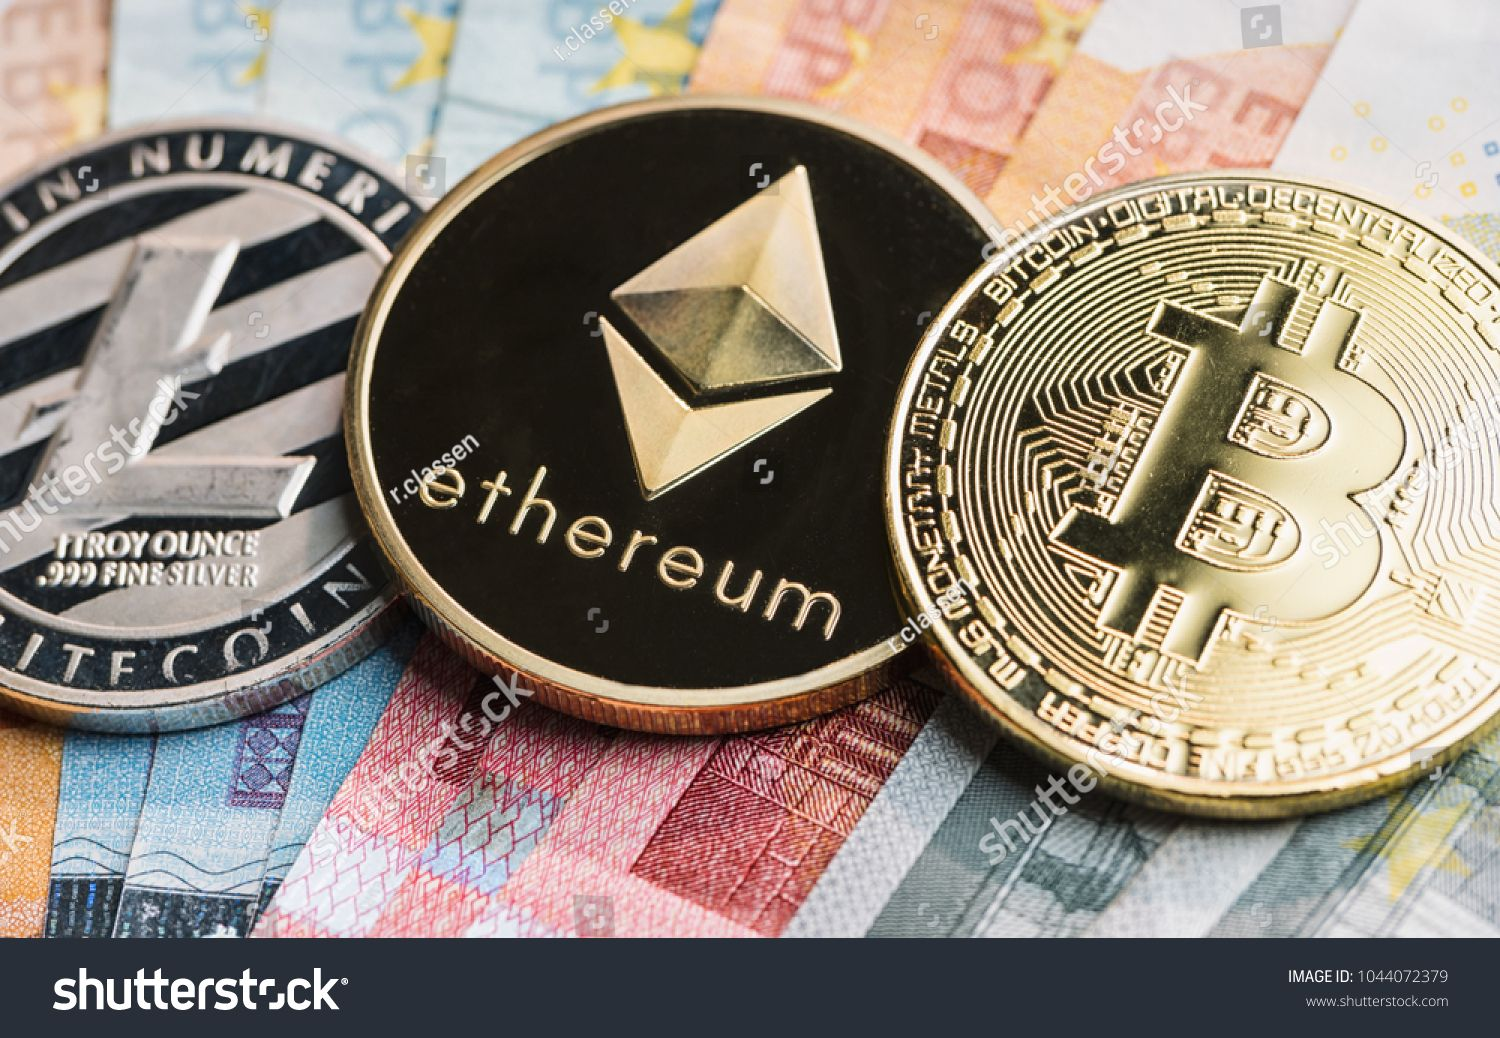 Top cryptocurrency coins